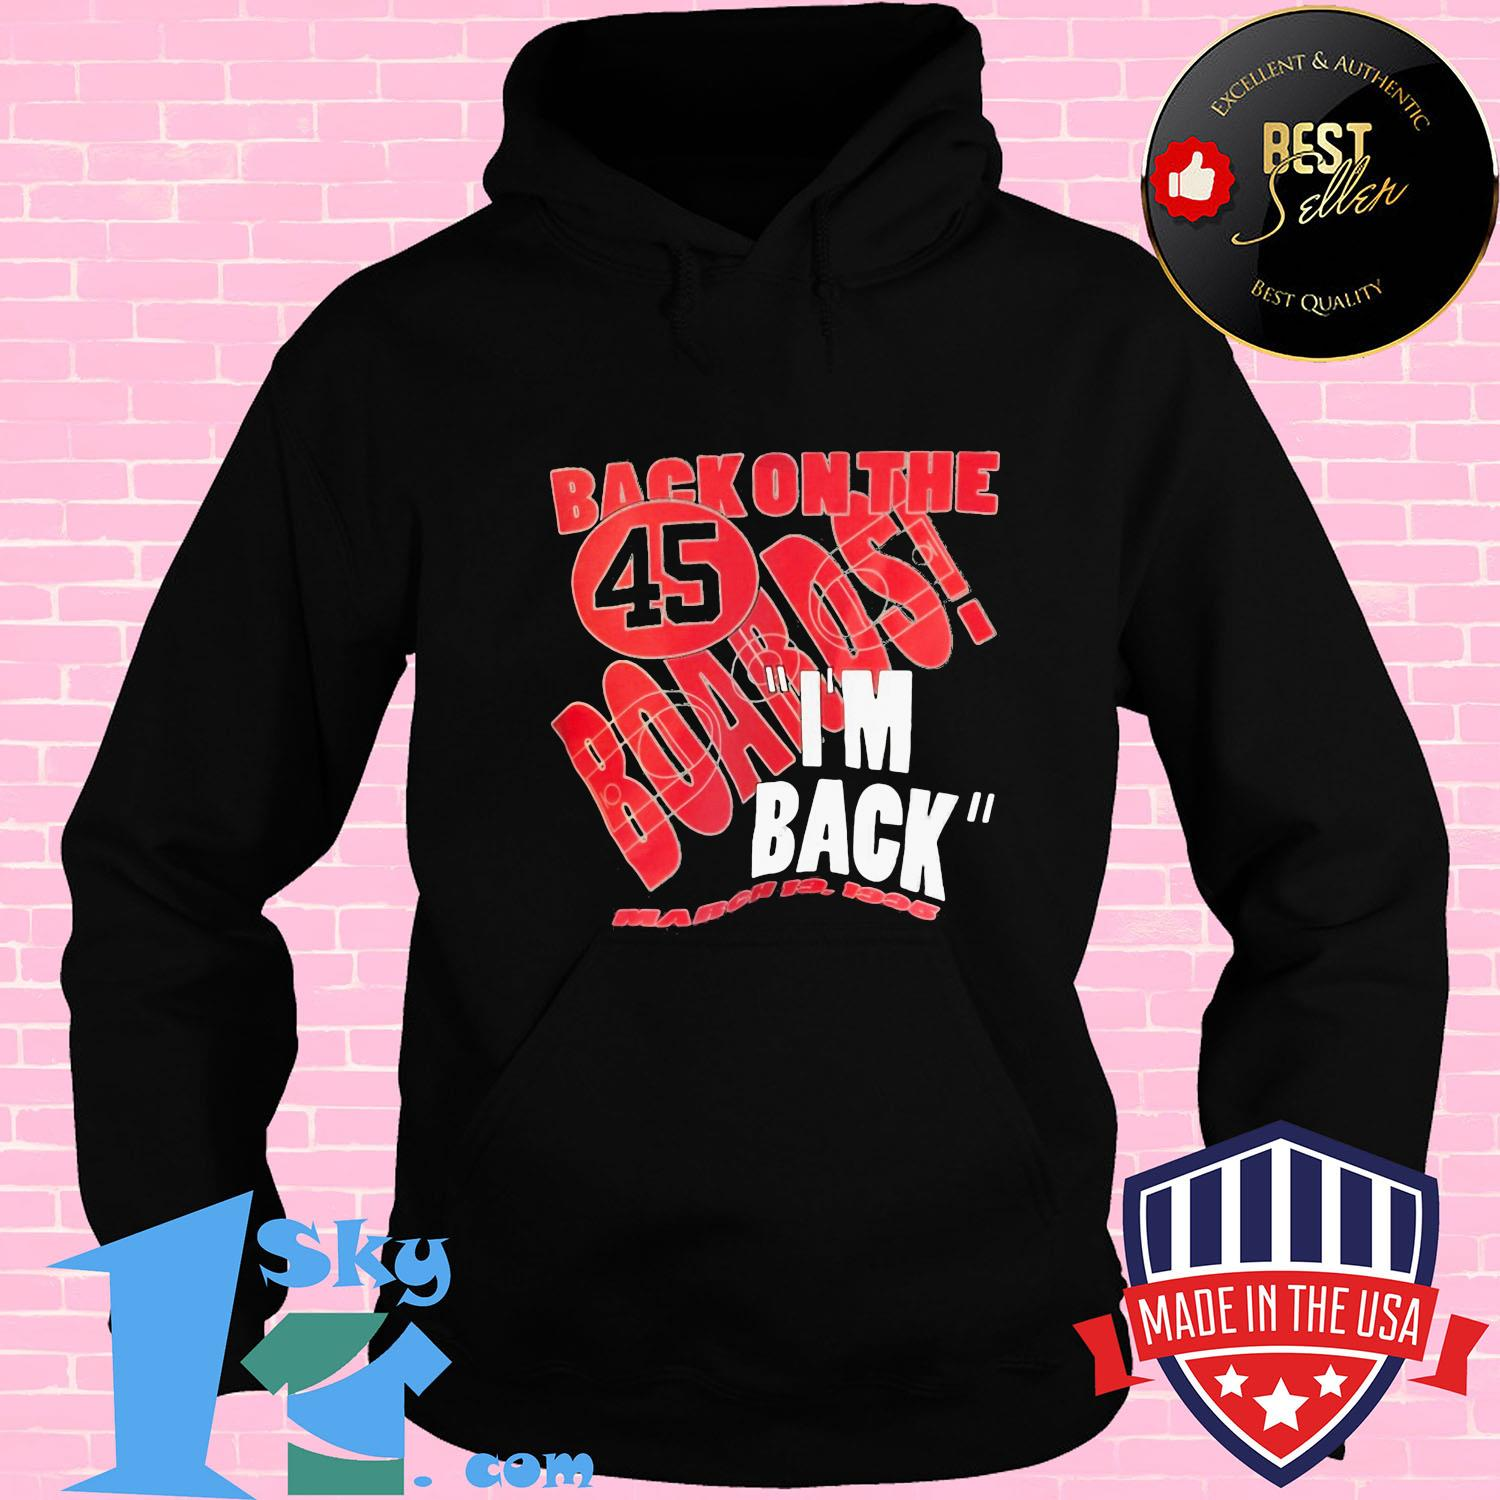 7e30b3f3 back on the 45 boards i m back shirt hoodie - Shop trending - We offer all trend shirts - 1SkyTee